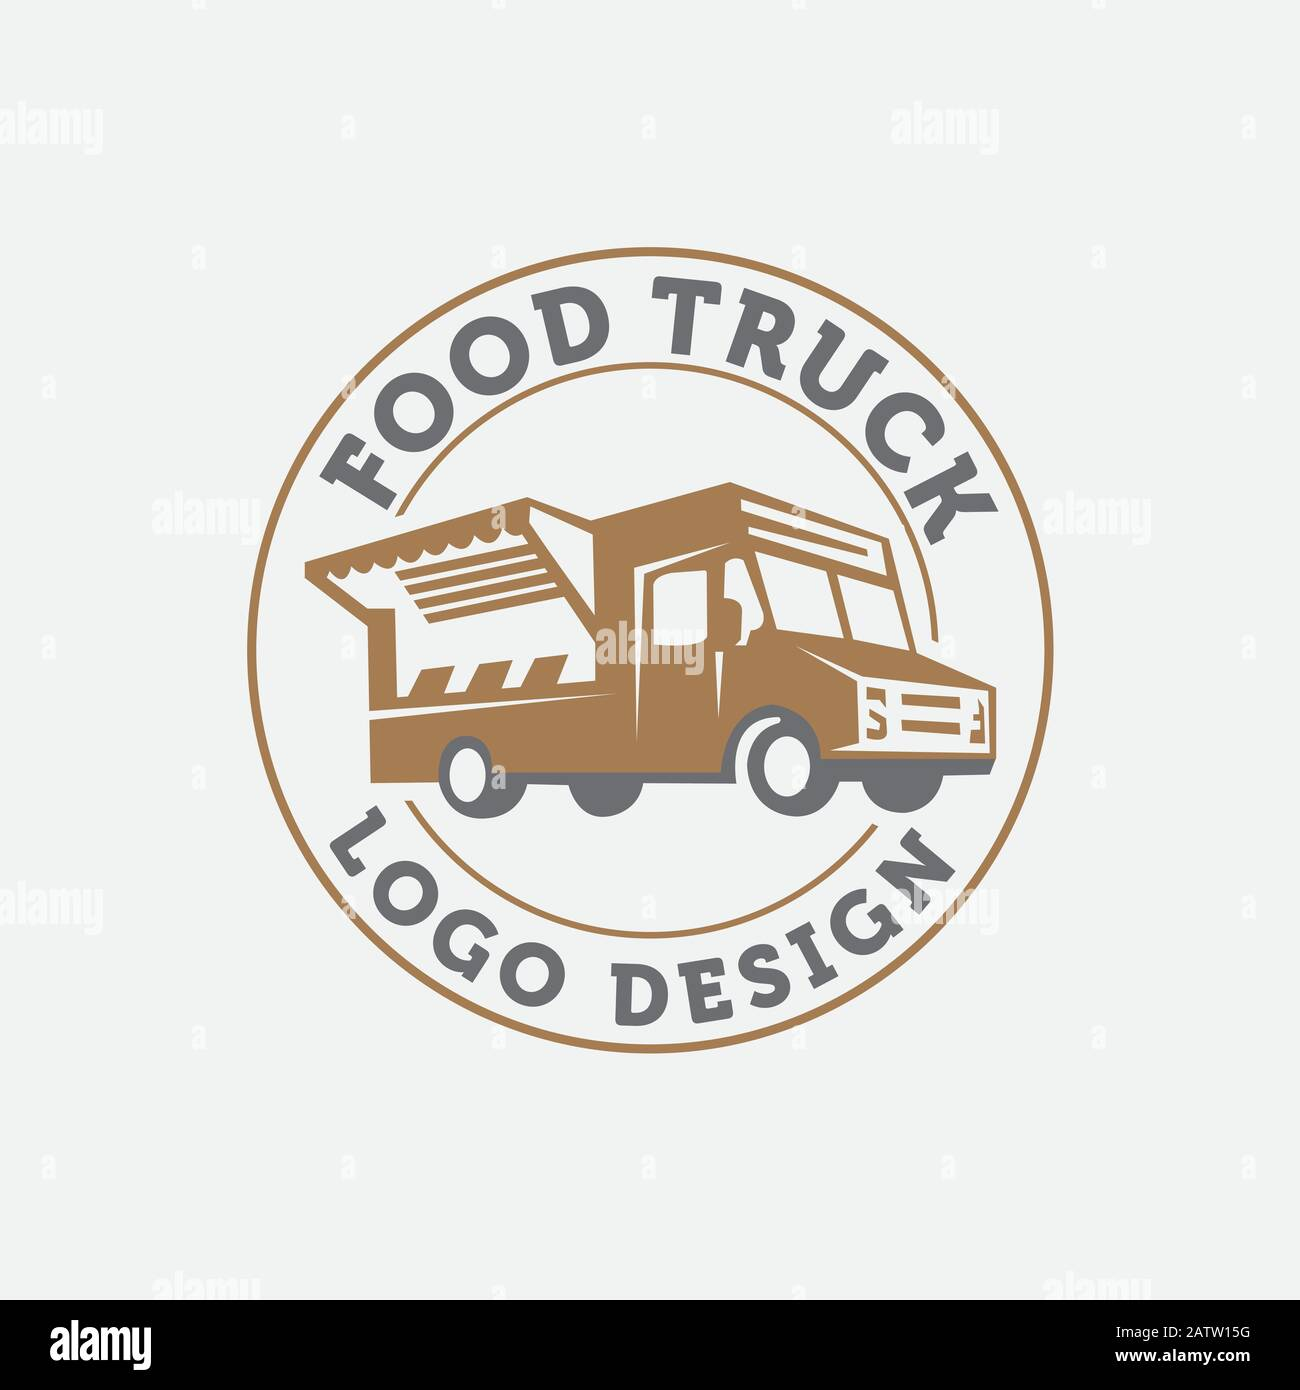 Foodstuffs white background Vintage kitchen print element with fork and knife, text and truck on grunge spot,Eps 10 Stock Vector